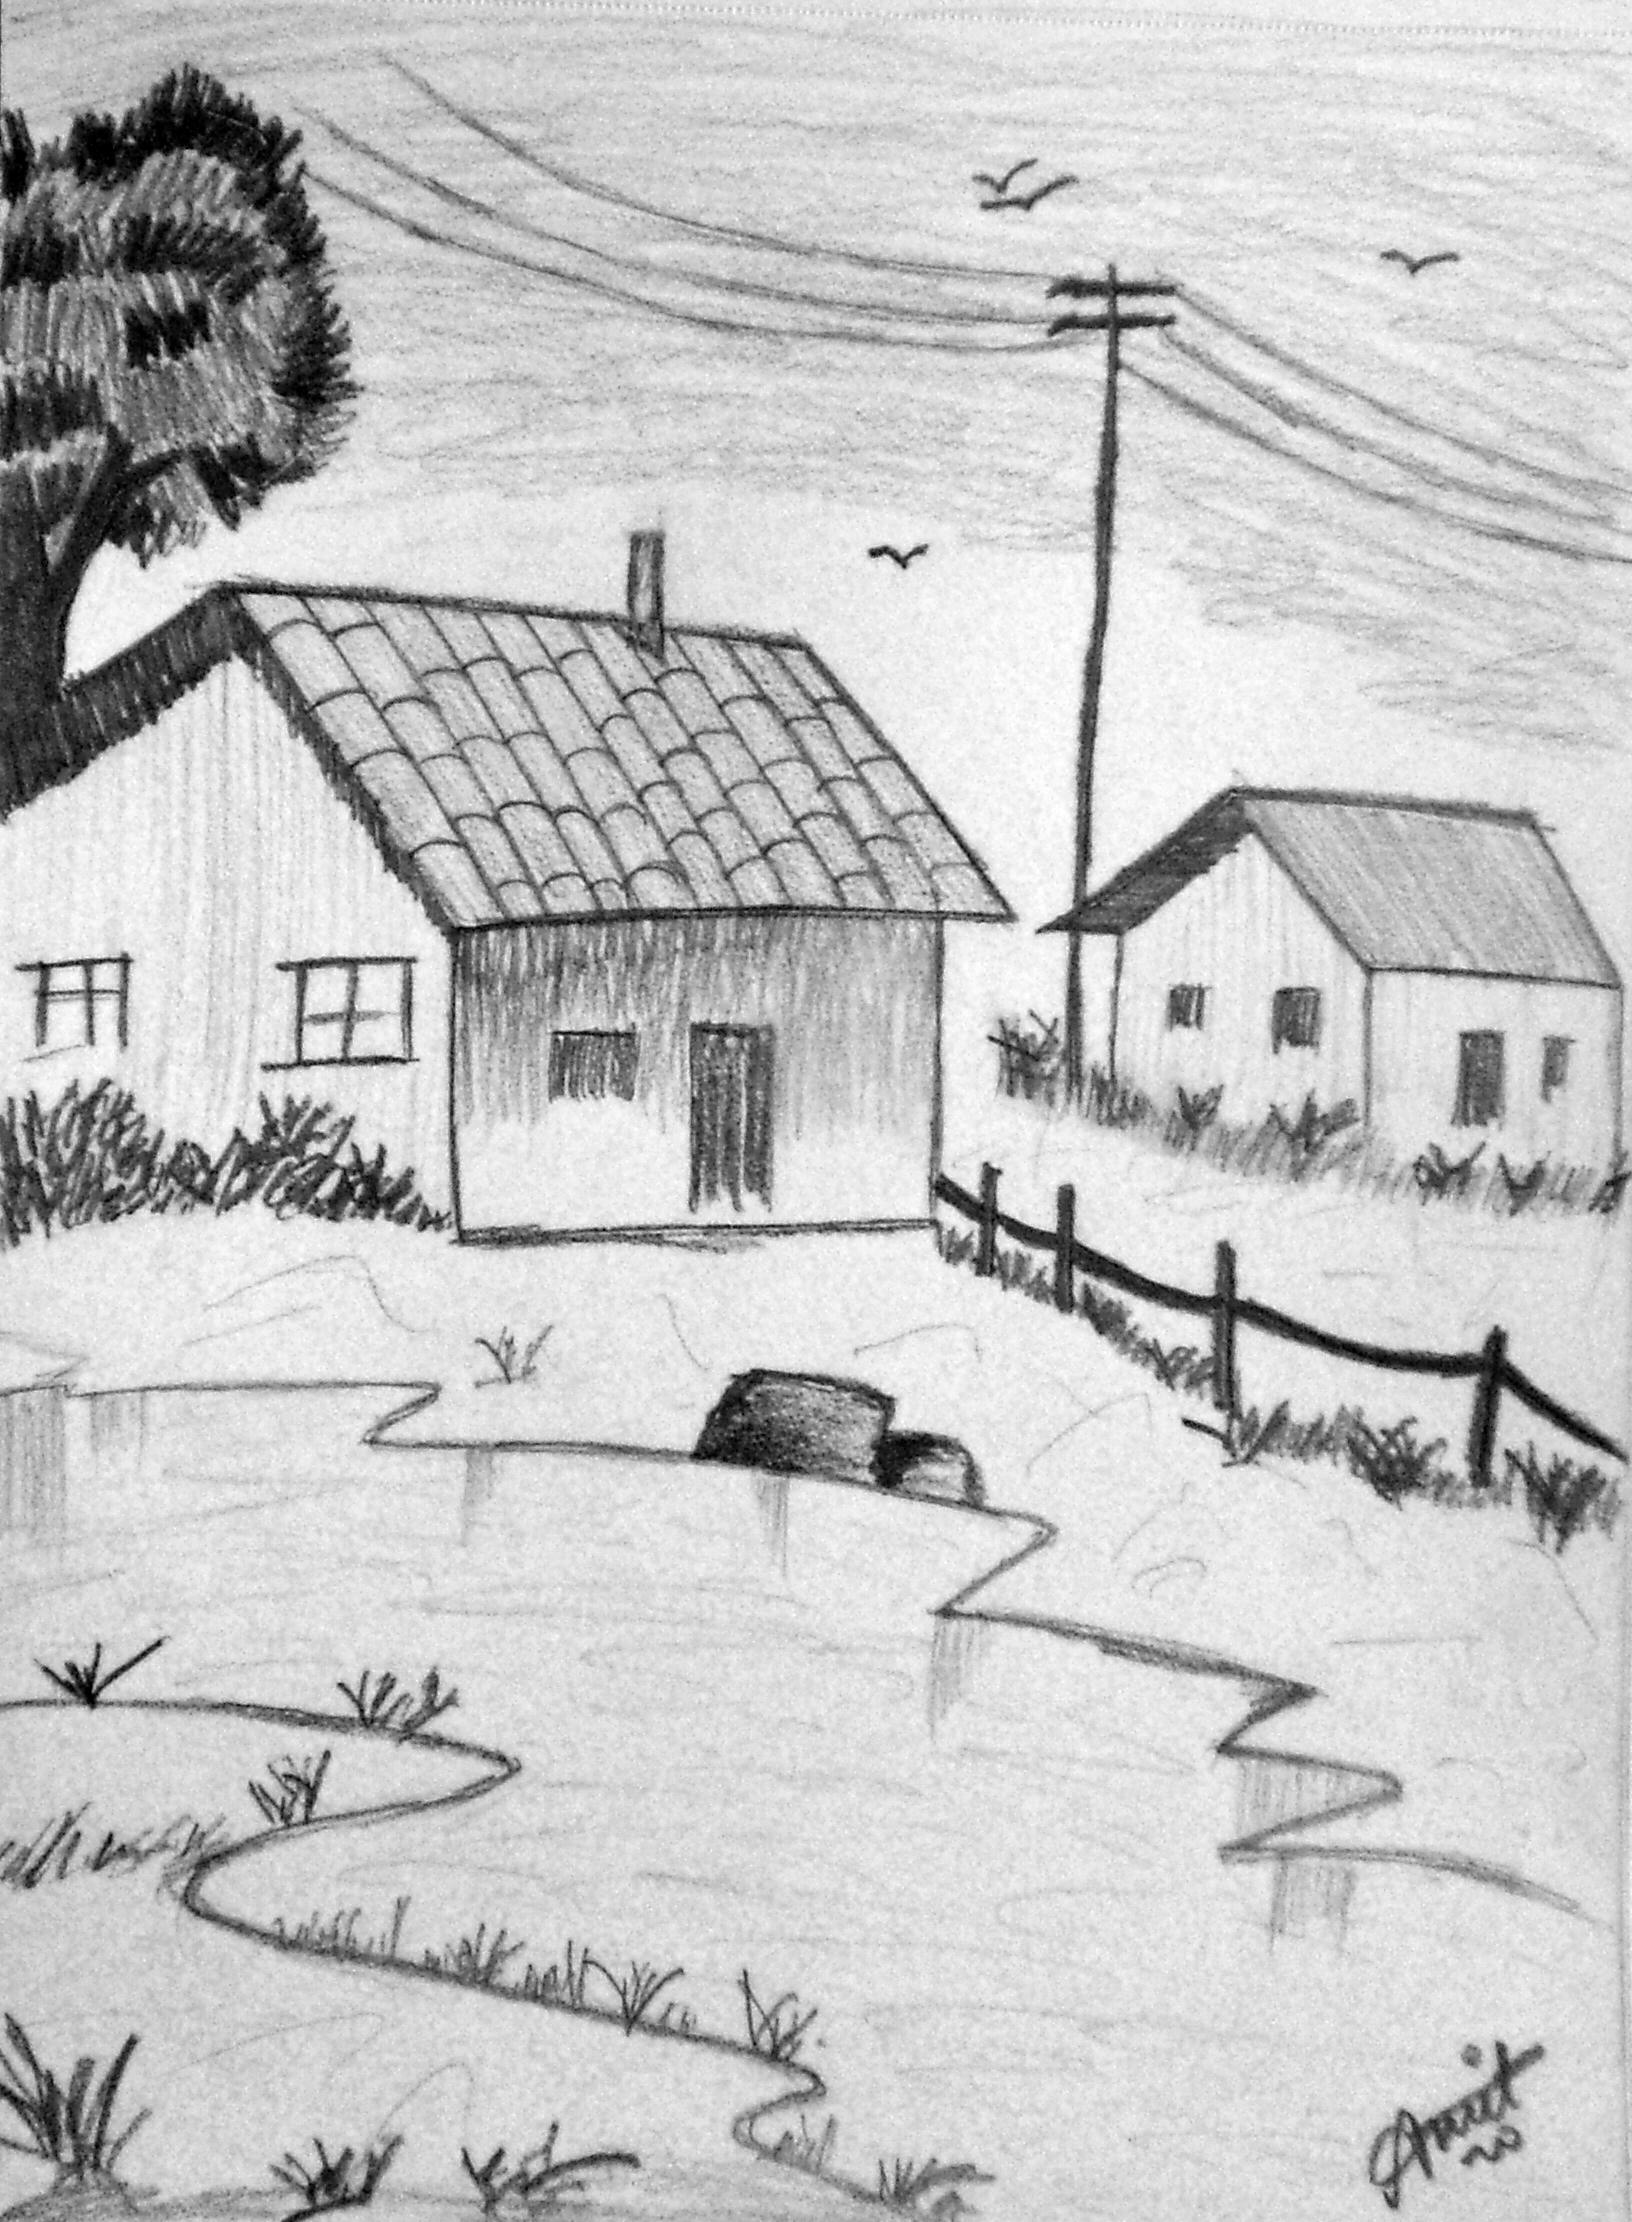 Drawn scenery easy Sketching Description by contemporary sale